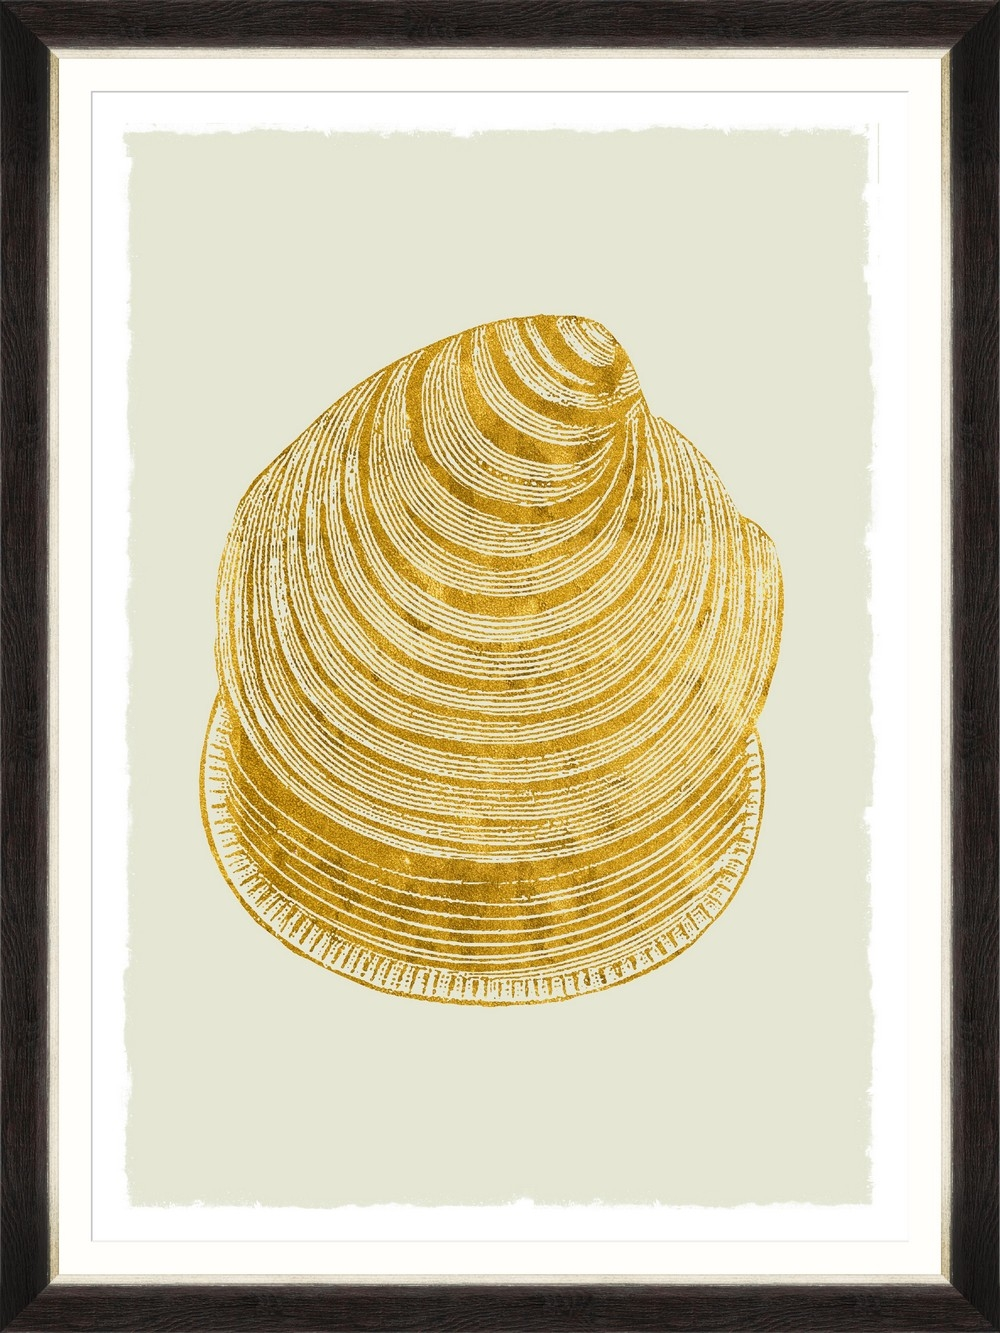 Tablou Framed Art Golden Seashell IV somproduct.ro